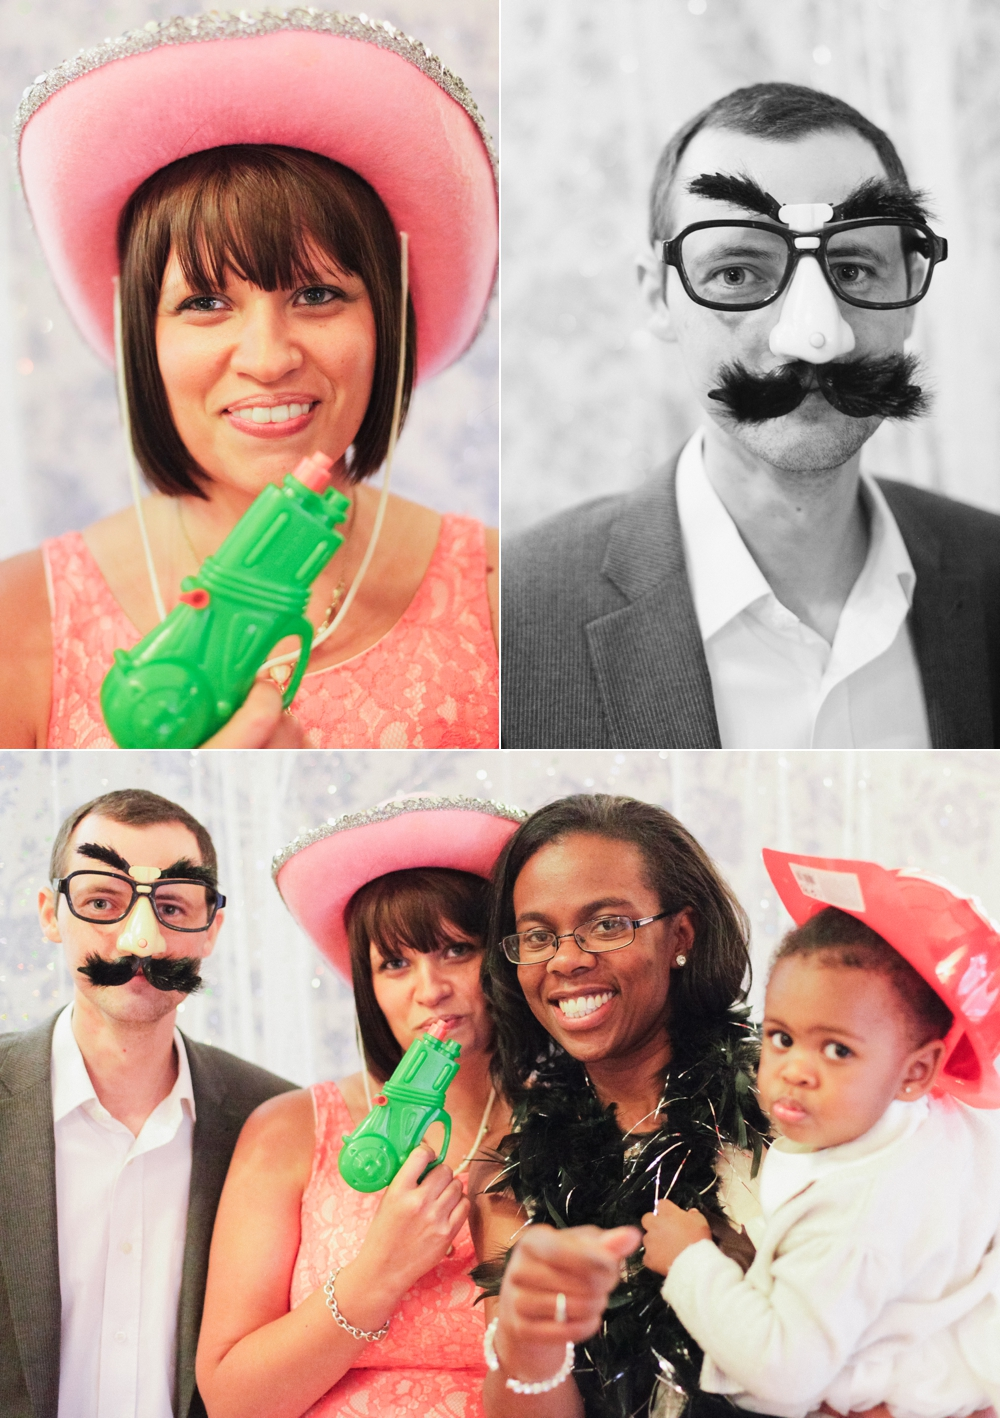 Wedding-Photo-Booth-Essex_0010.jpg